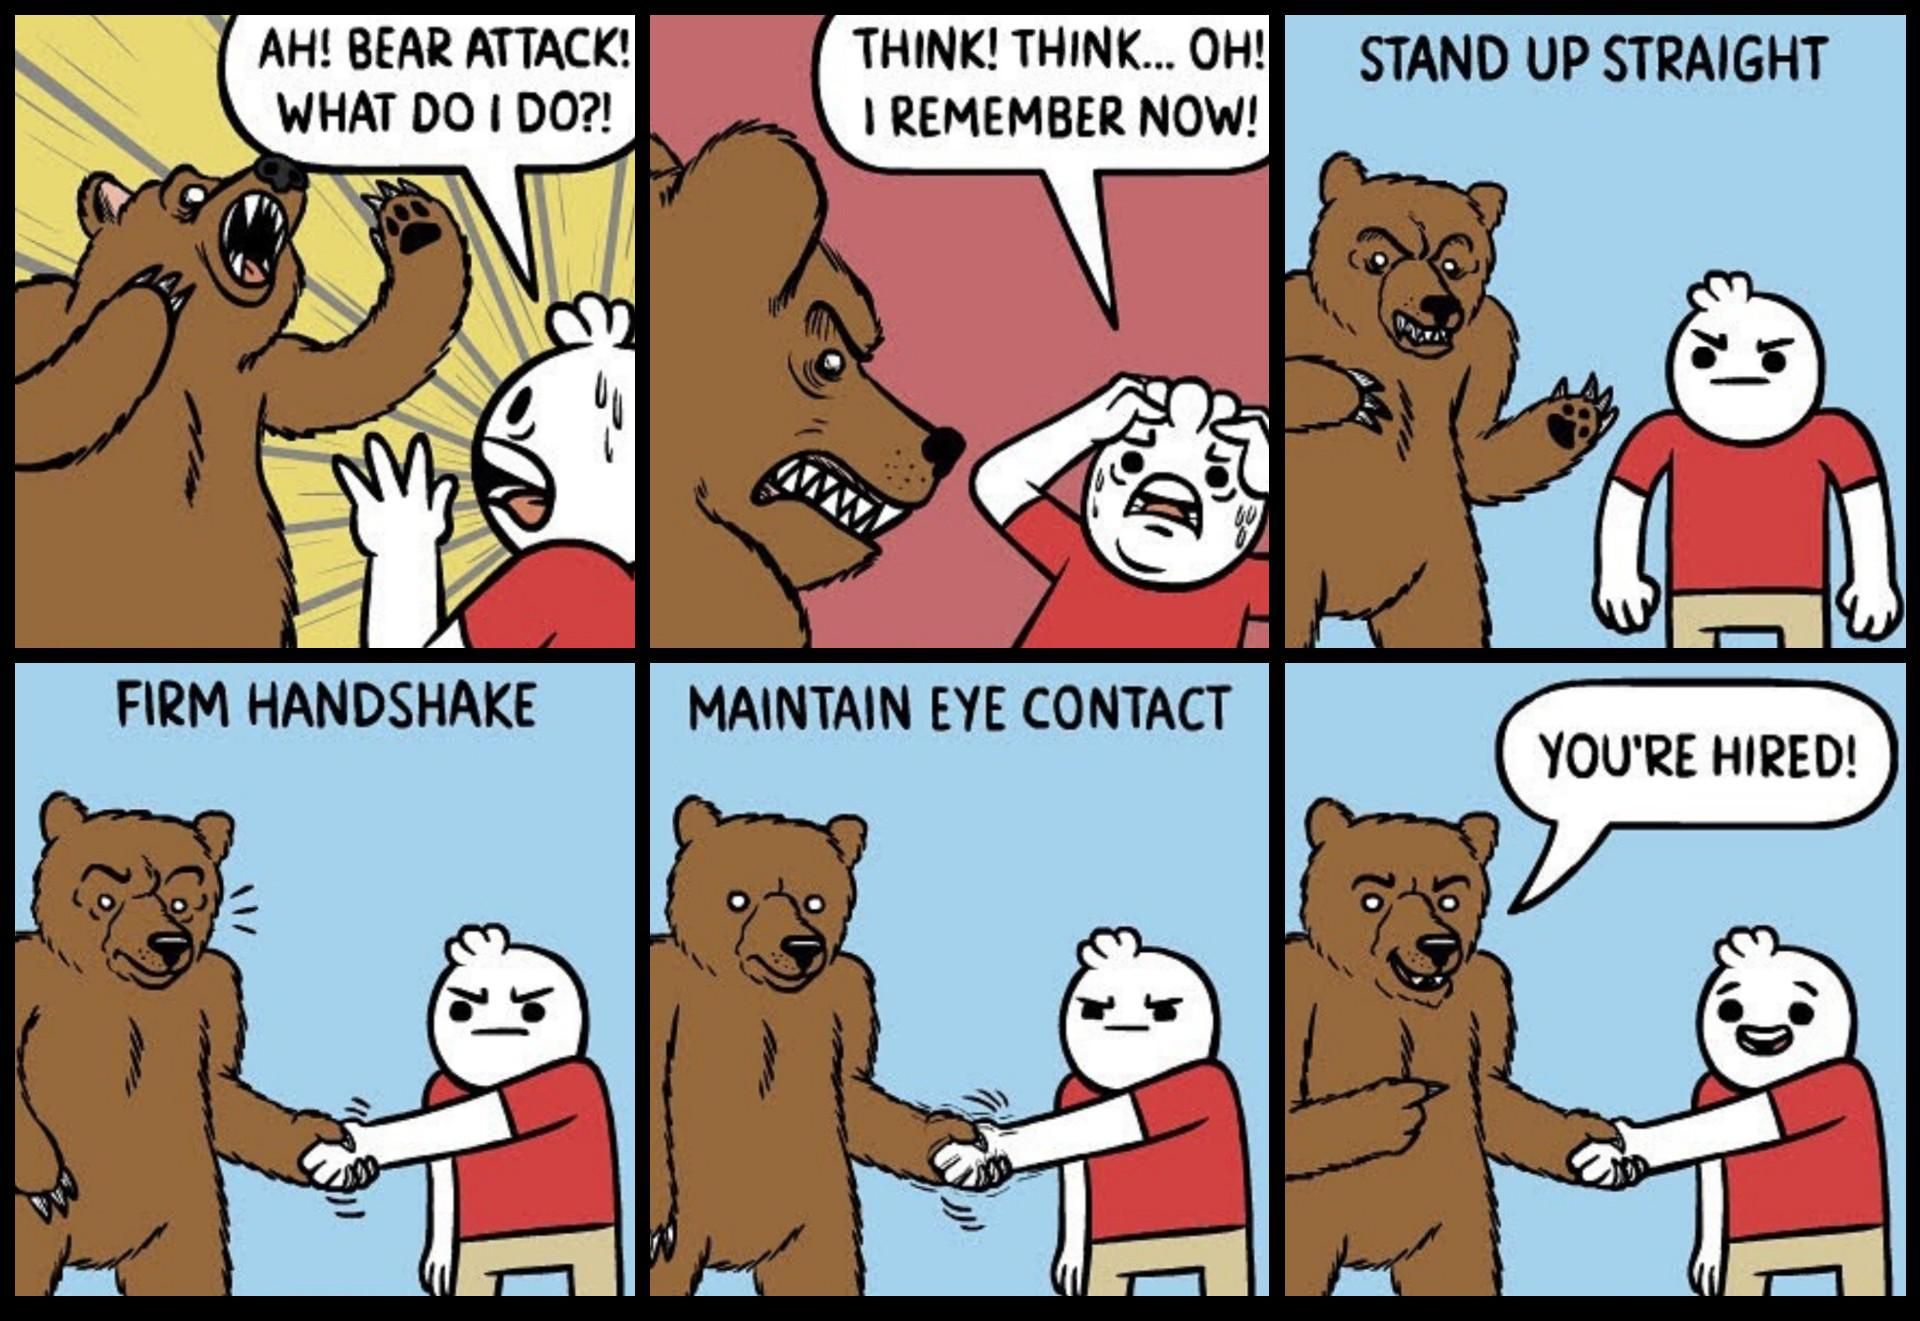 What to do during a bear attack